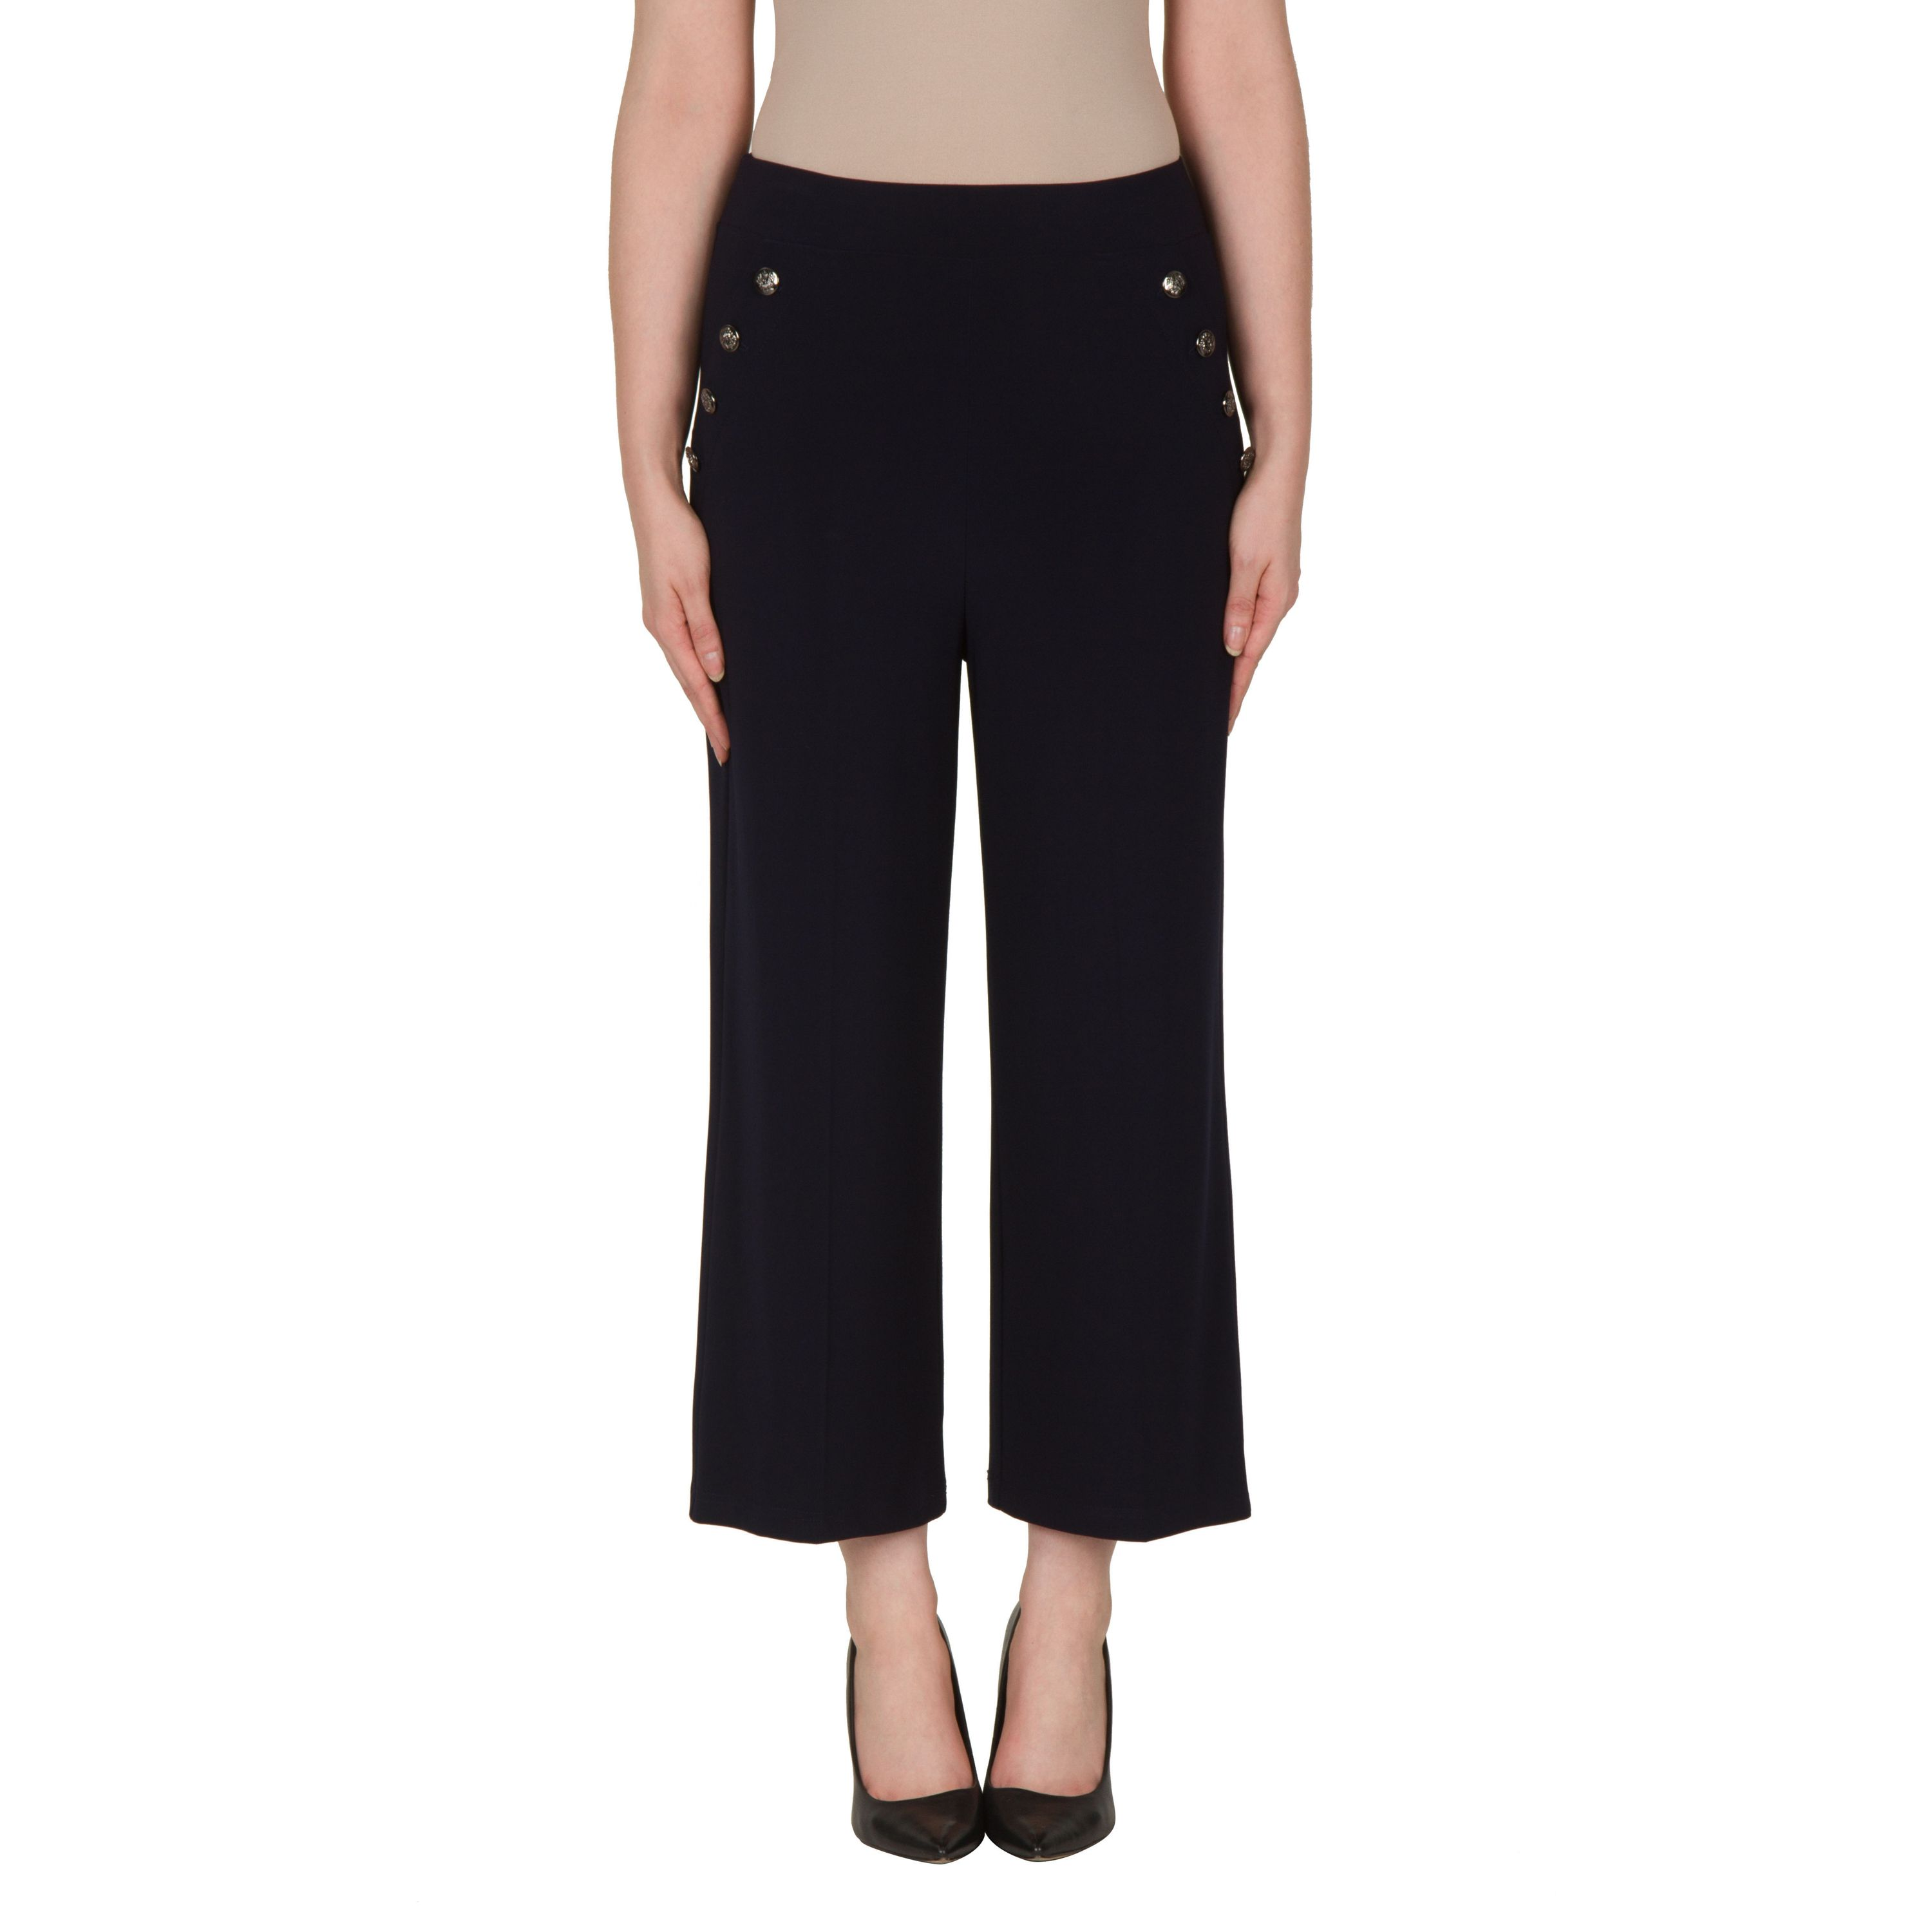 967f59b09c5a6f Joseph Ribkoff Trousers Midnight Blue 172093 are a fabulous cruise wear  piece with an elasticated waistband giving an easygoing pull on style.